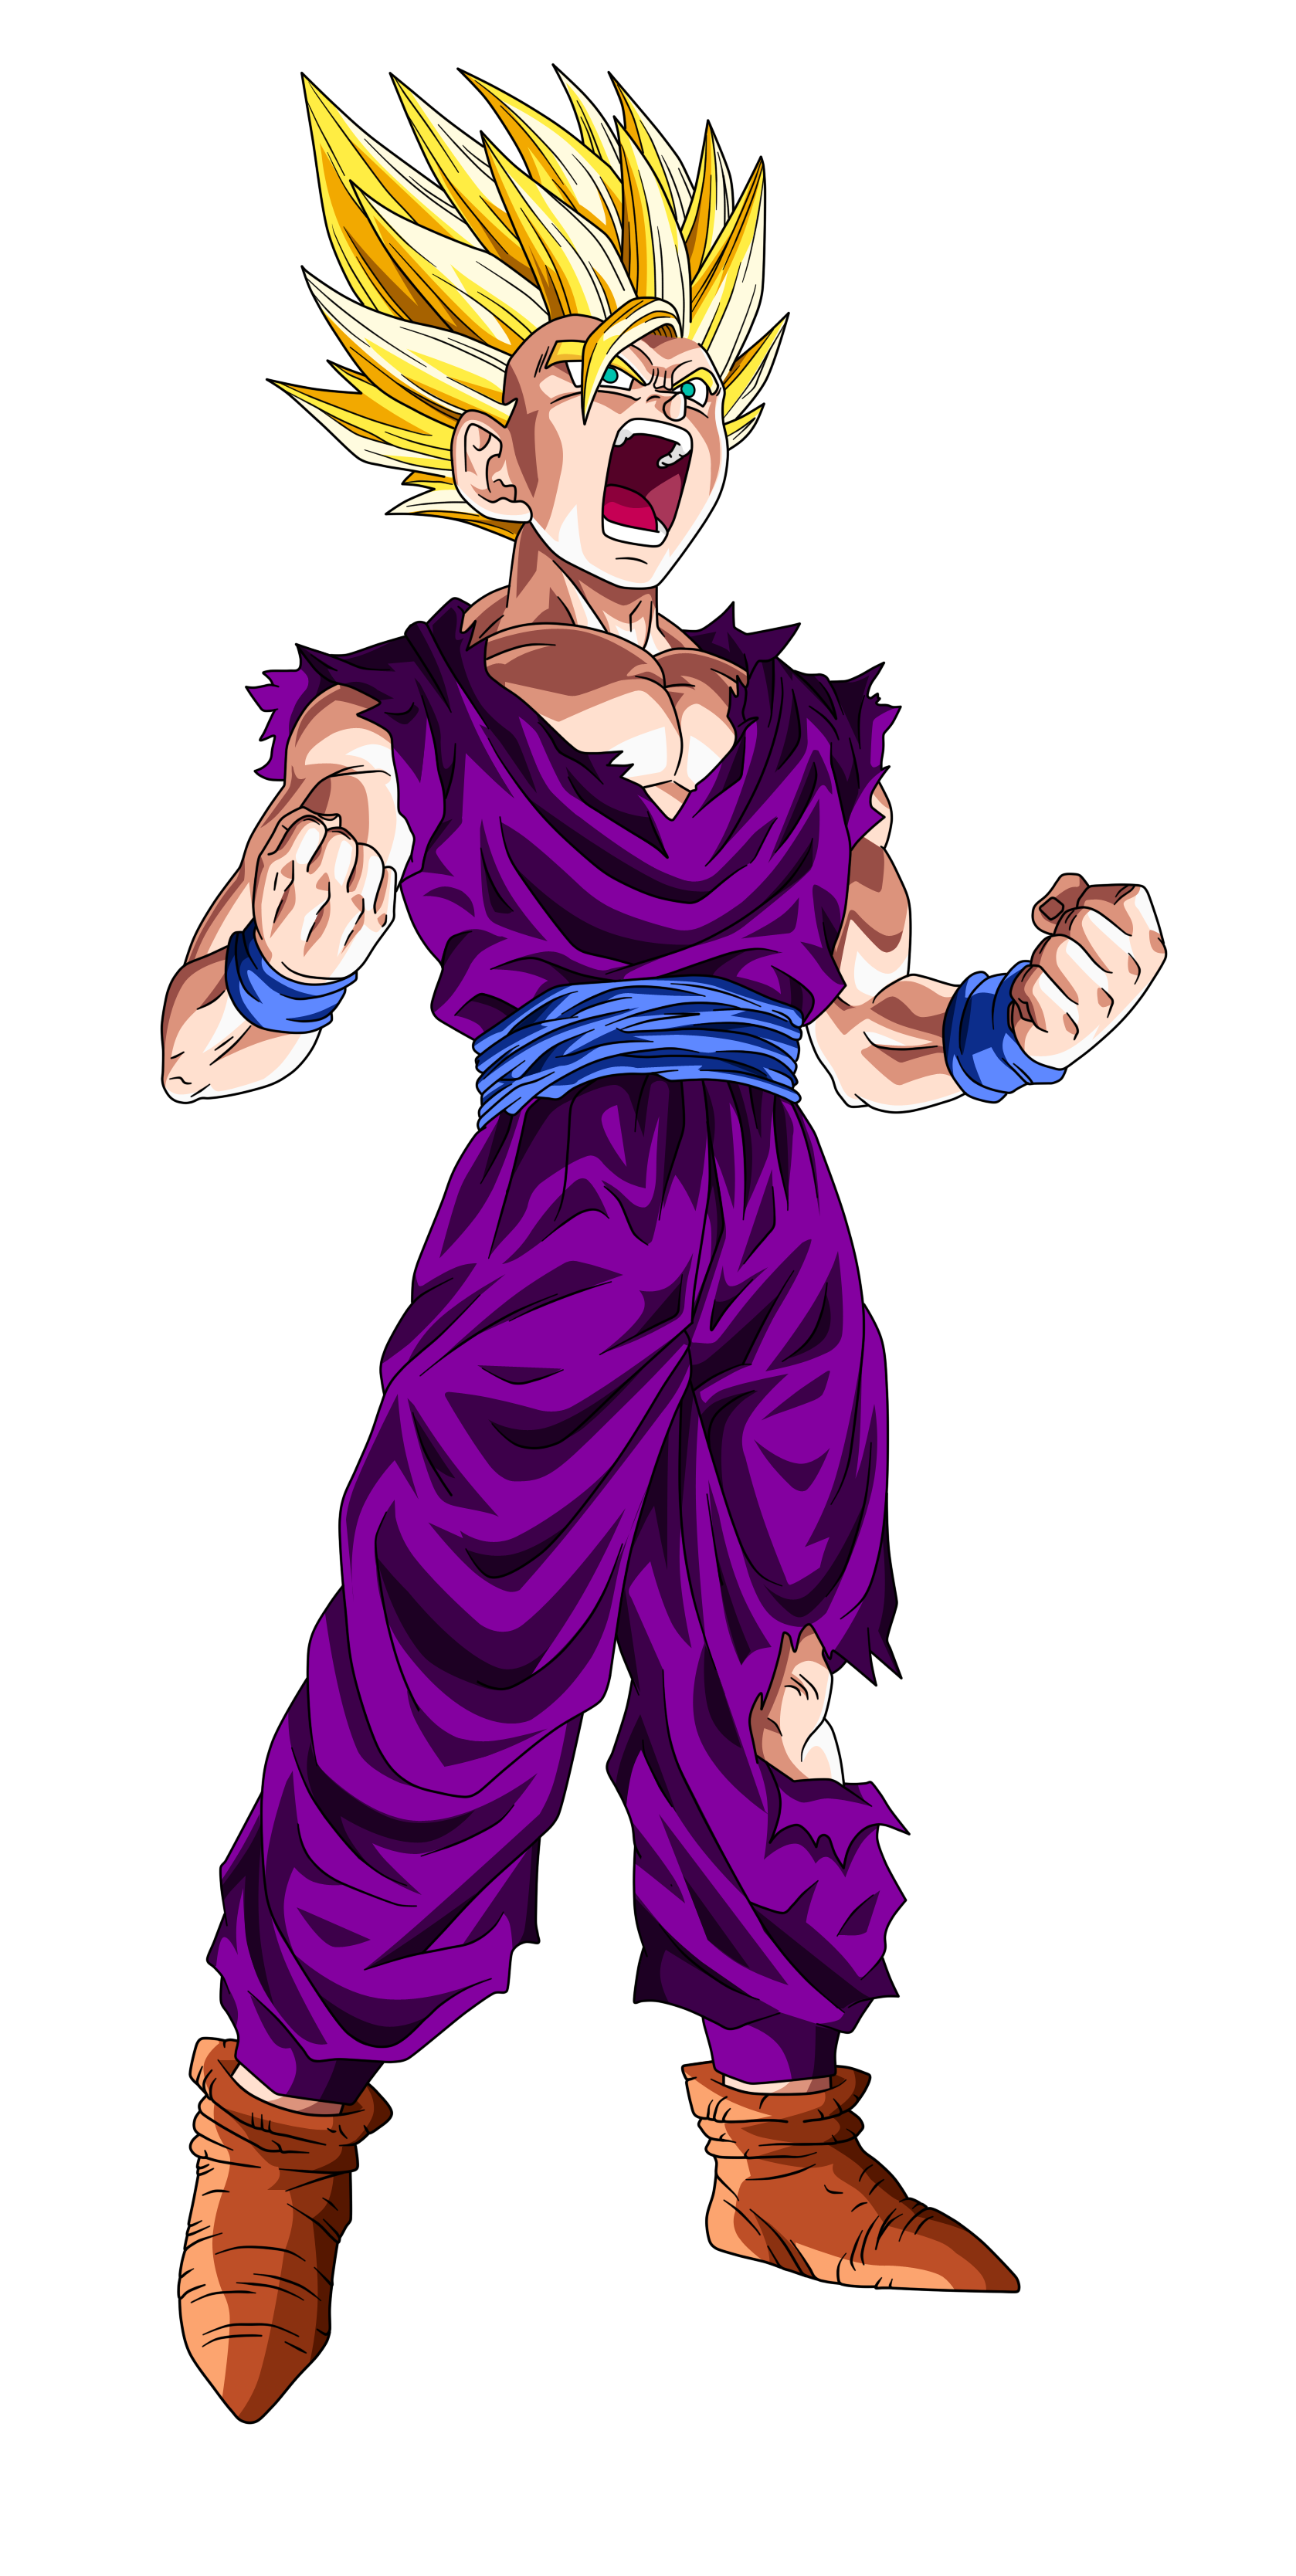 Gohan super saiyajin 2 dragon ball wiki fandom powered - Dragon ball z gohan images ...